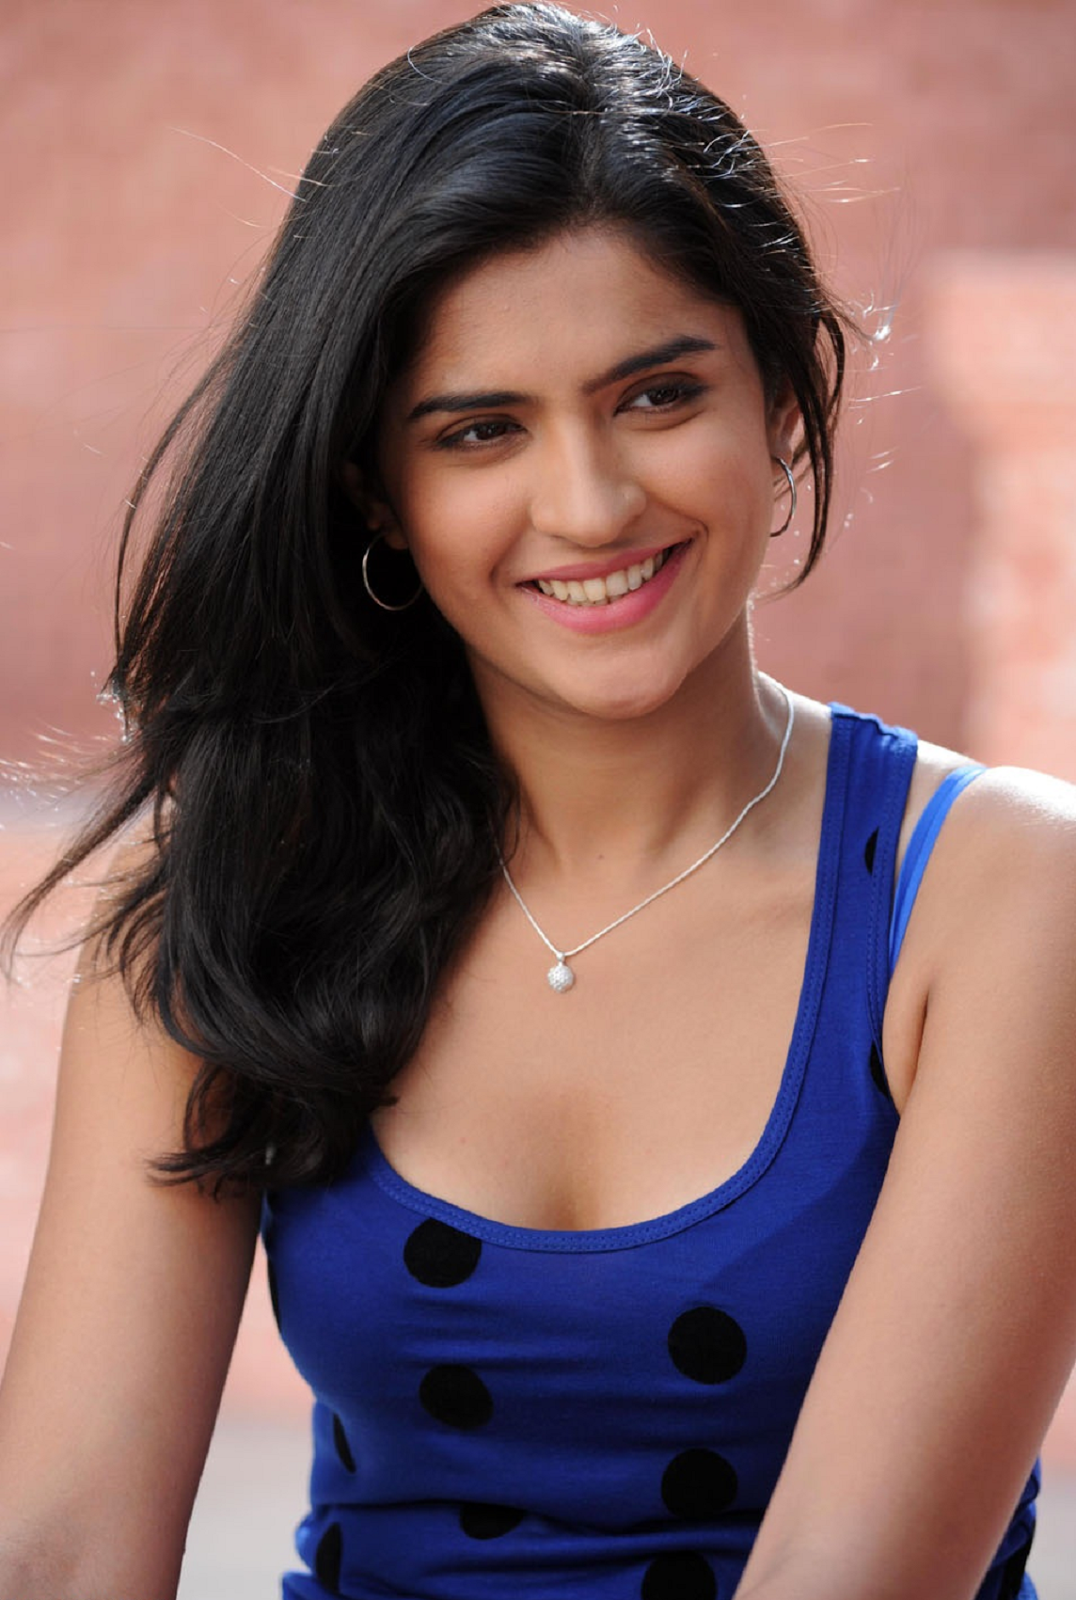 Get Complete Biography Of Surabhi New Tamil Actress After Being Recommended To Seek Acting Opportunities In The South Indian Film Filmibeat In Other